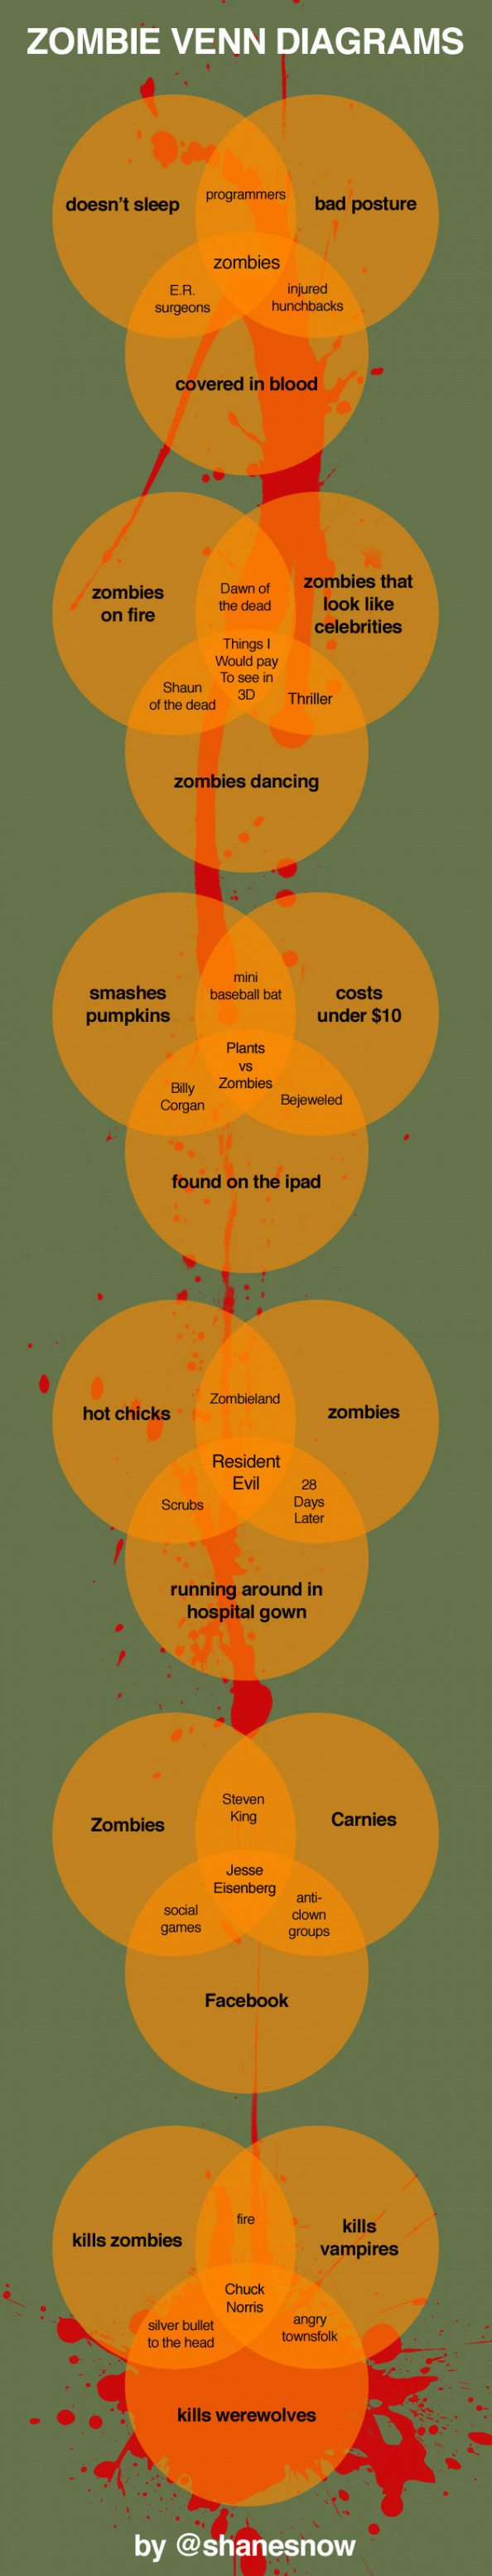 Zombie Venn Diagrams Infographic